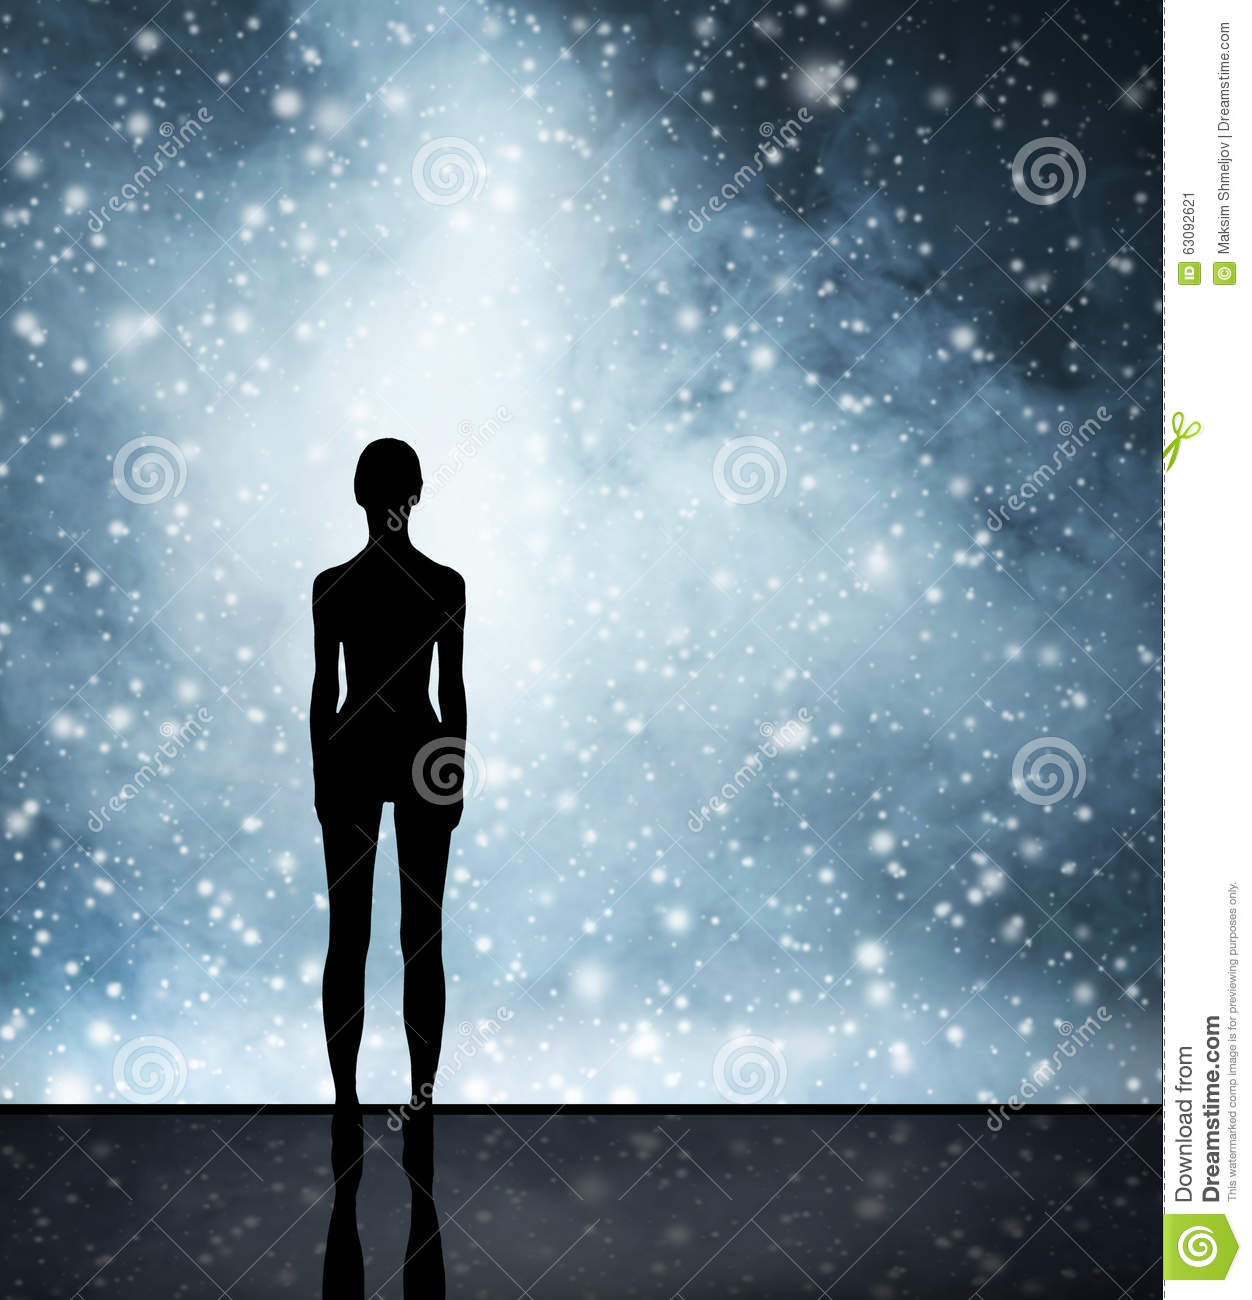 Abstract Christmas Background. Winter Sky, Snowflakes And Stars Stock Photo - Image: 63092621